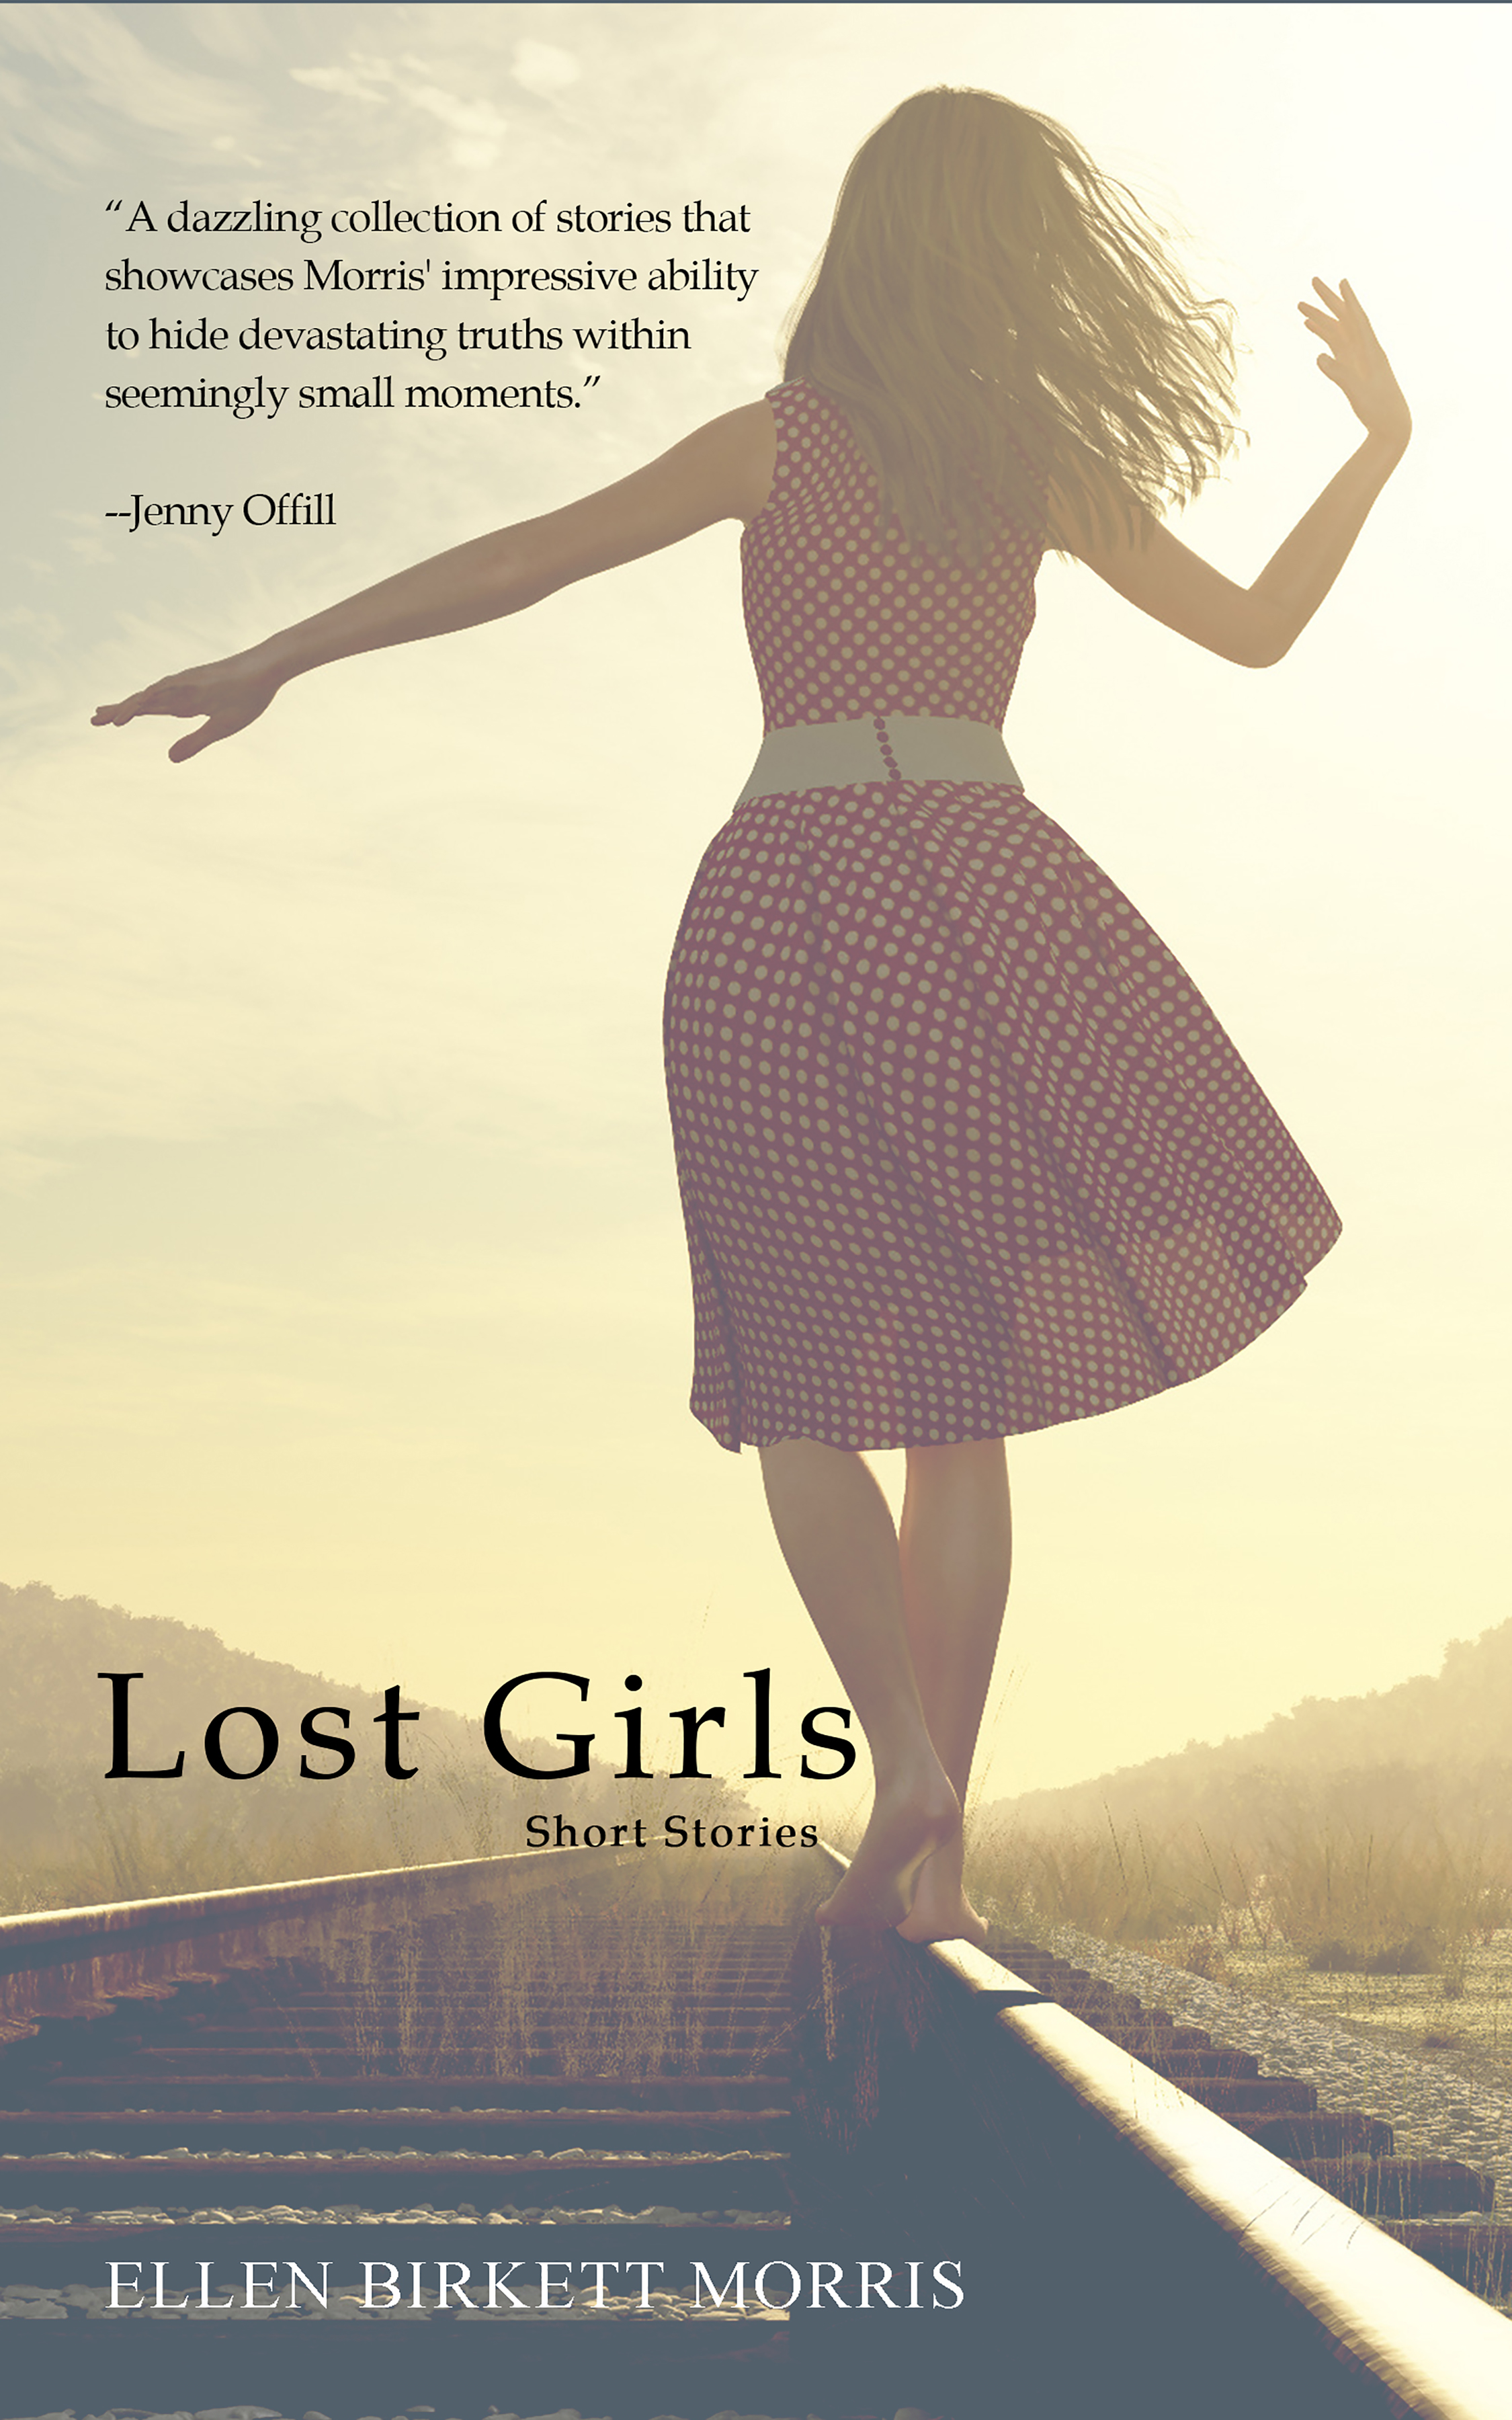 Lost Girls_5x8_paperback_FRONT